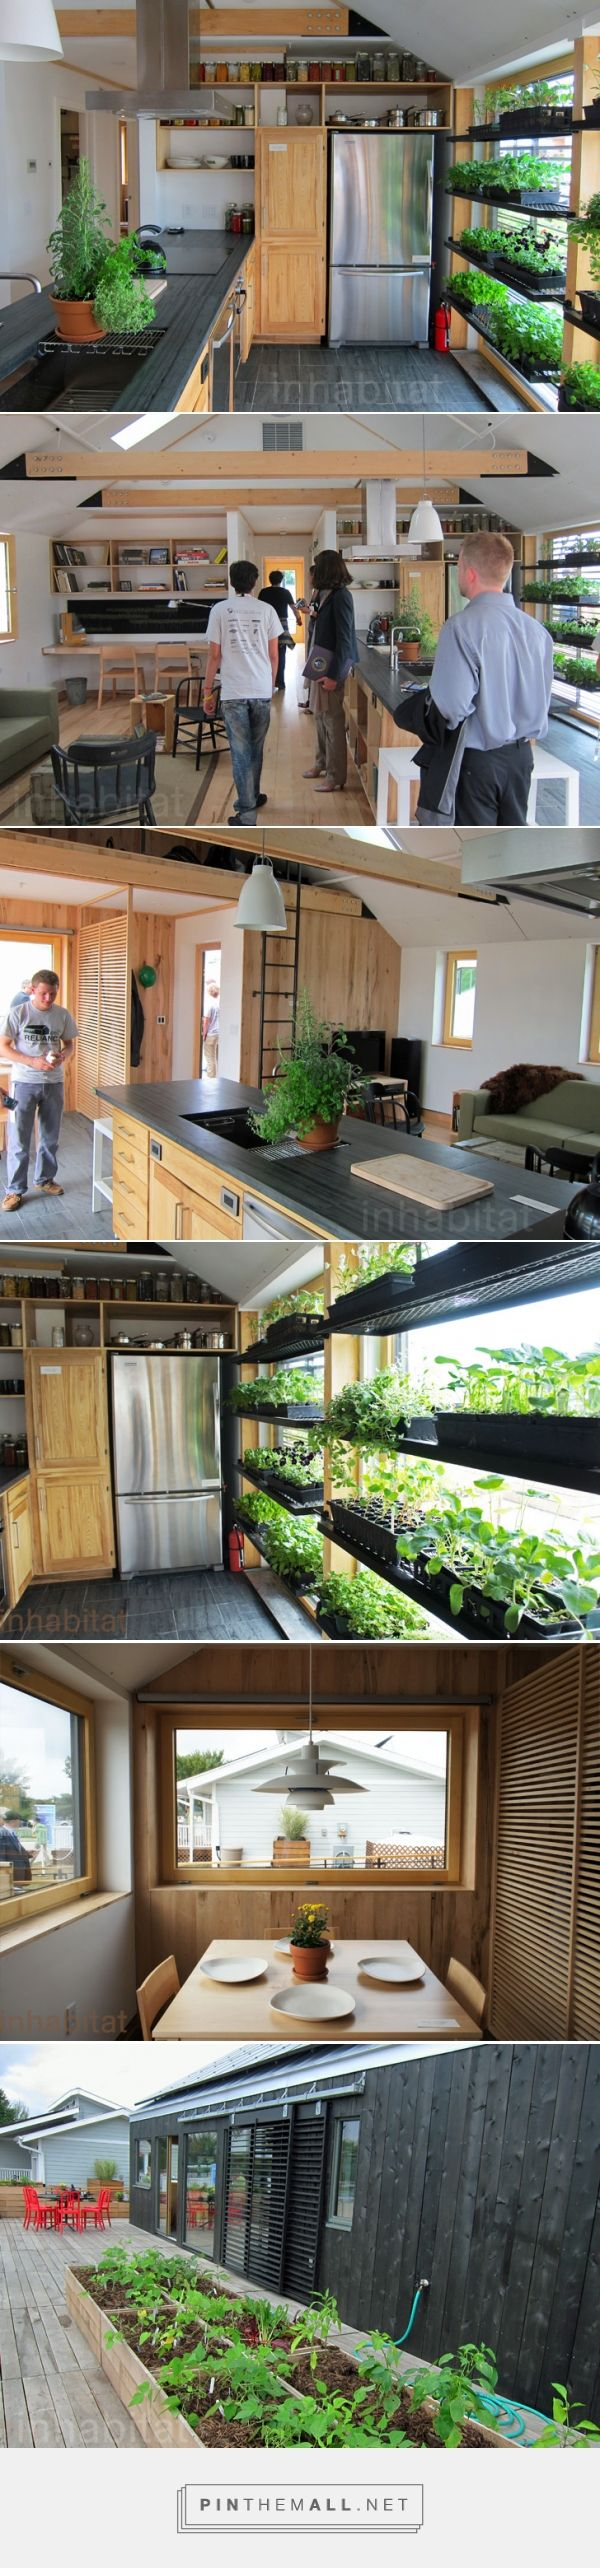 Middlebury College's Self-Reliance Solar Decathlon House Wins Communications Contest! Solar Decathlon 2011, Middlebury College, Self-Reliance – Inhabitat - Sustainable Design Innovation, Eco Architecture, Green Building - created via http://pinthemall.net